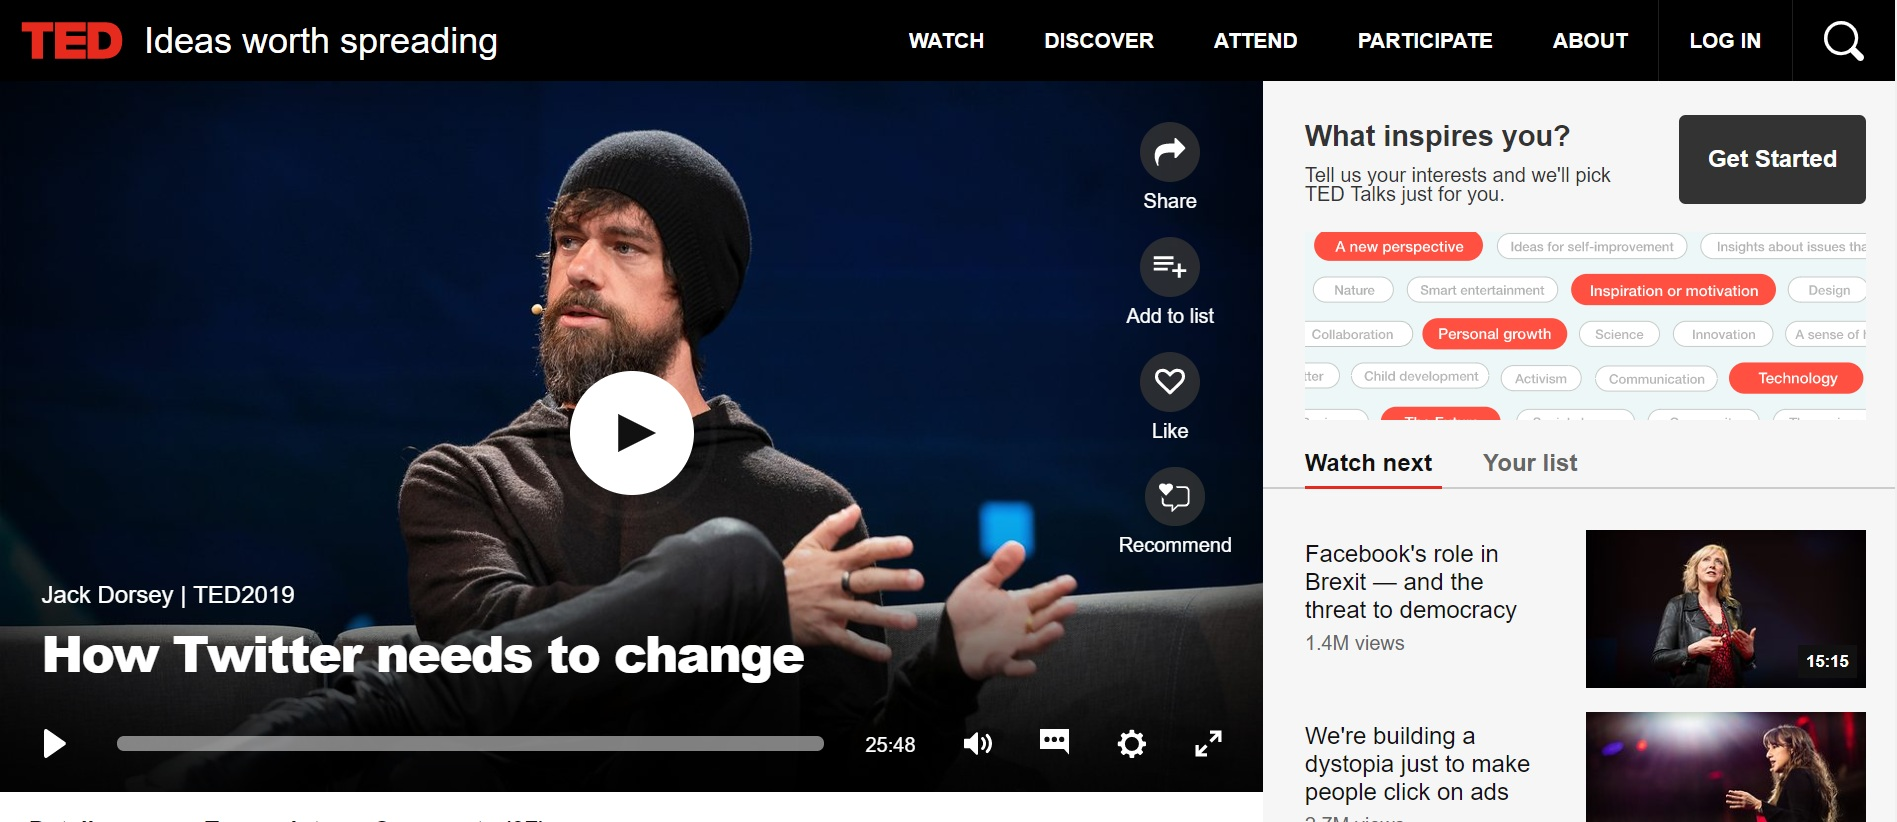 Jack+Dorsey++How+Twitter+needs+to+change+++TED+Talk.jpg